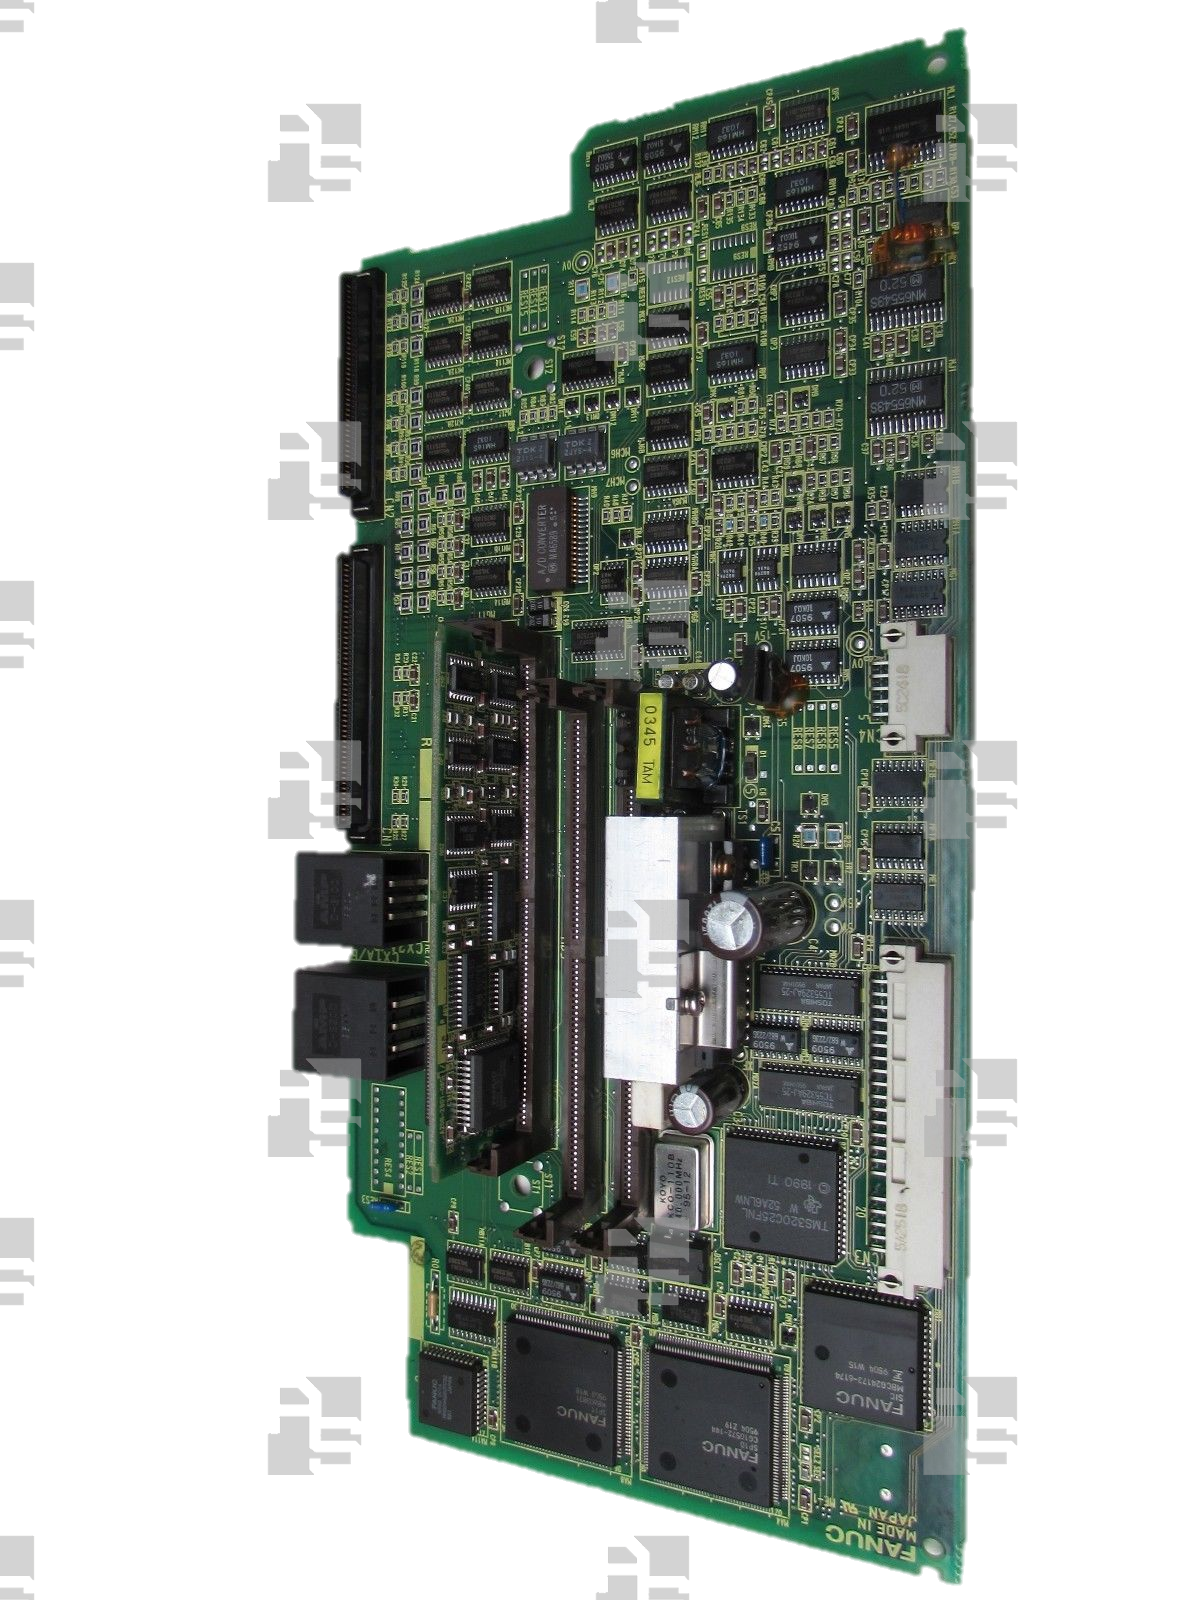 A16B-2202-0440 Spindle Control PCB